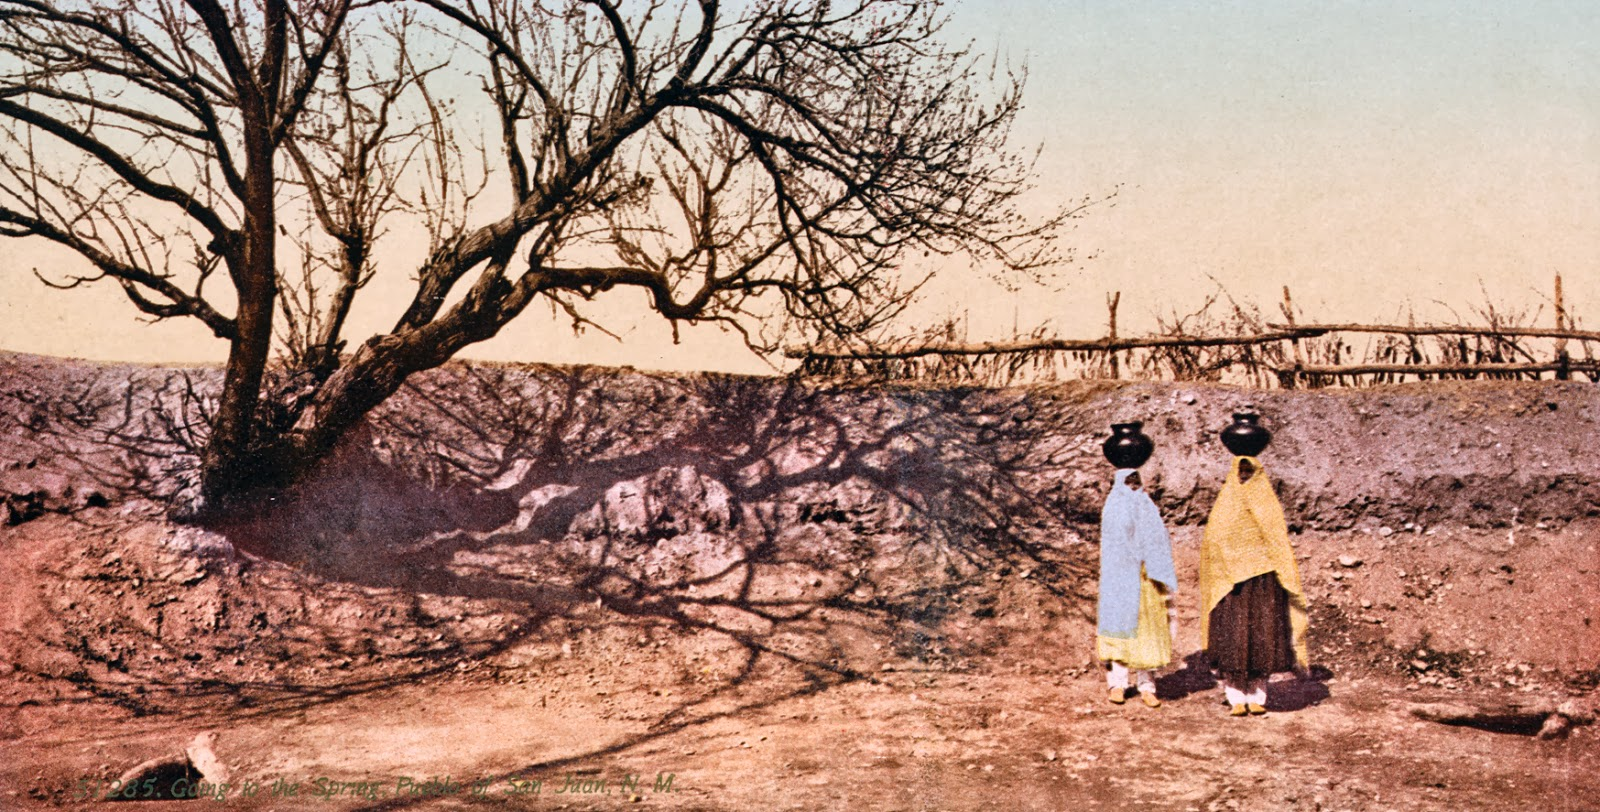 Going to the spring, Pueblo of San Juan, New Mexico, 1898-1905.jpg